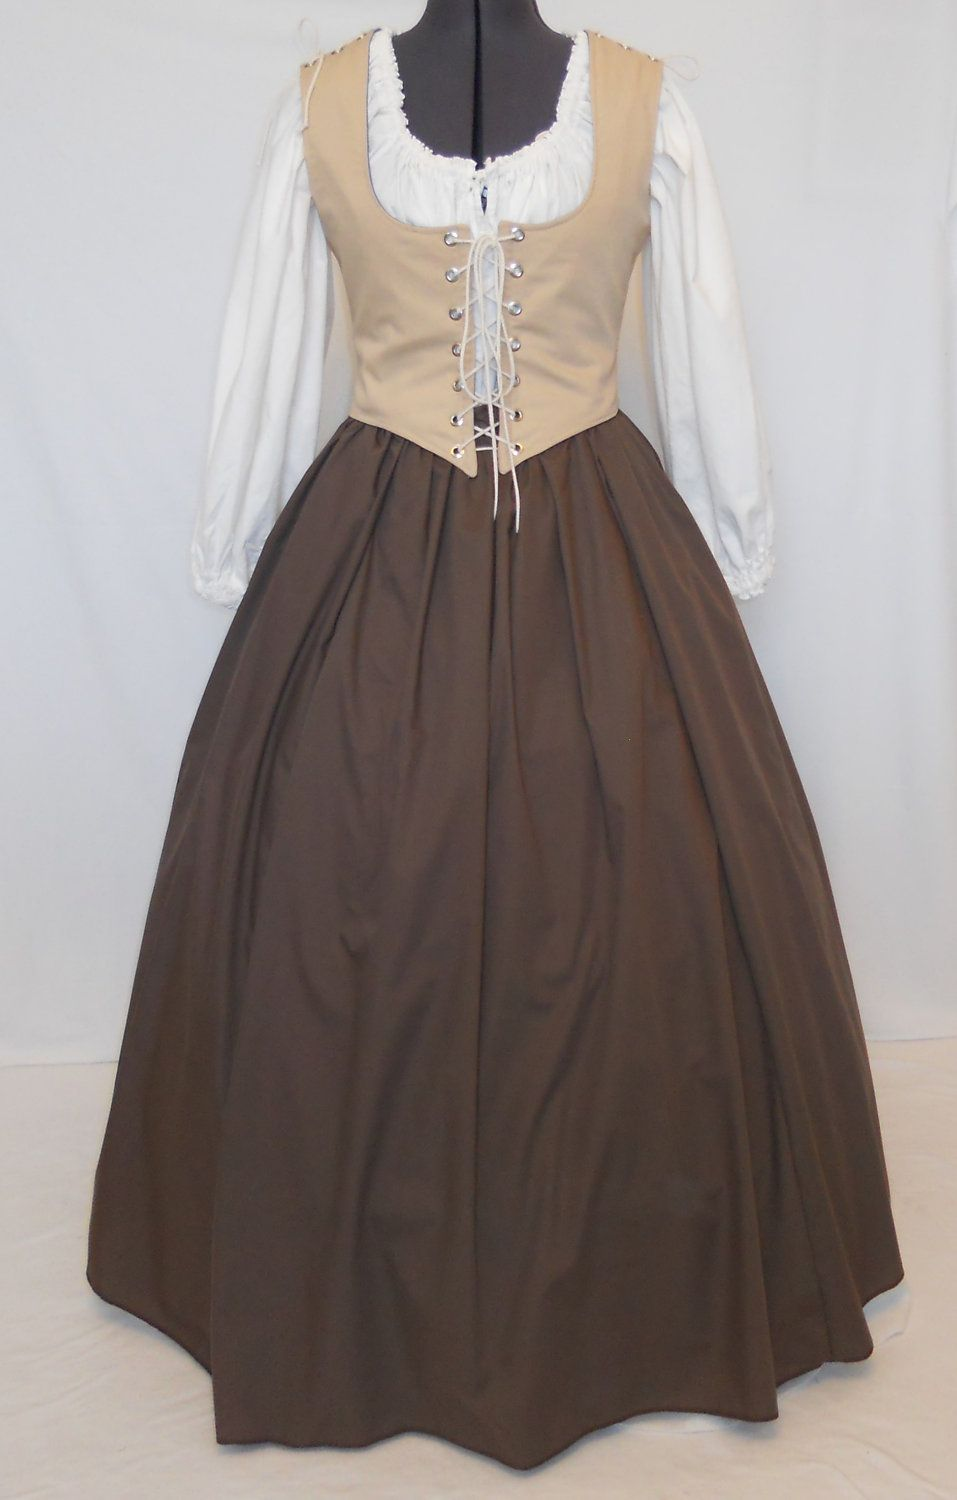 5736b5103 Renaissance Dress Pirate Tavern Wench Peasant by MidnightsMeadow